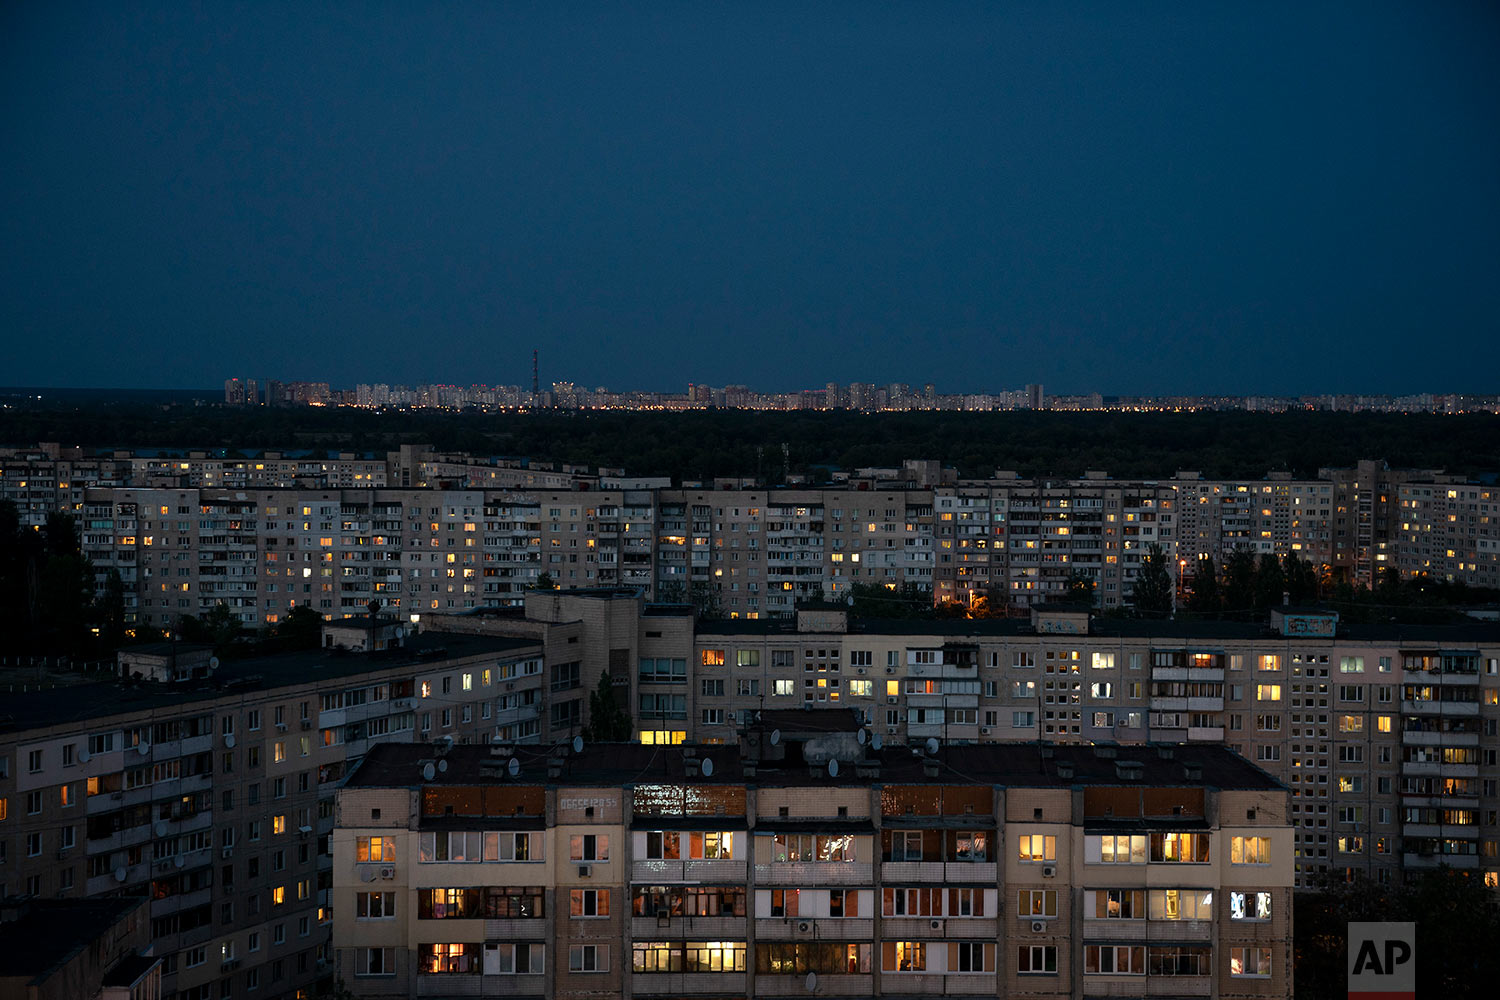 Buildings are illuminated at dusk In Kiev, Ukraine on Aug. 21, 2018. (AP Photo/Felipe Dana)